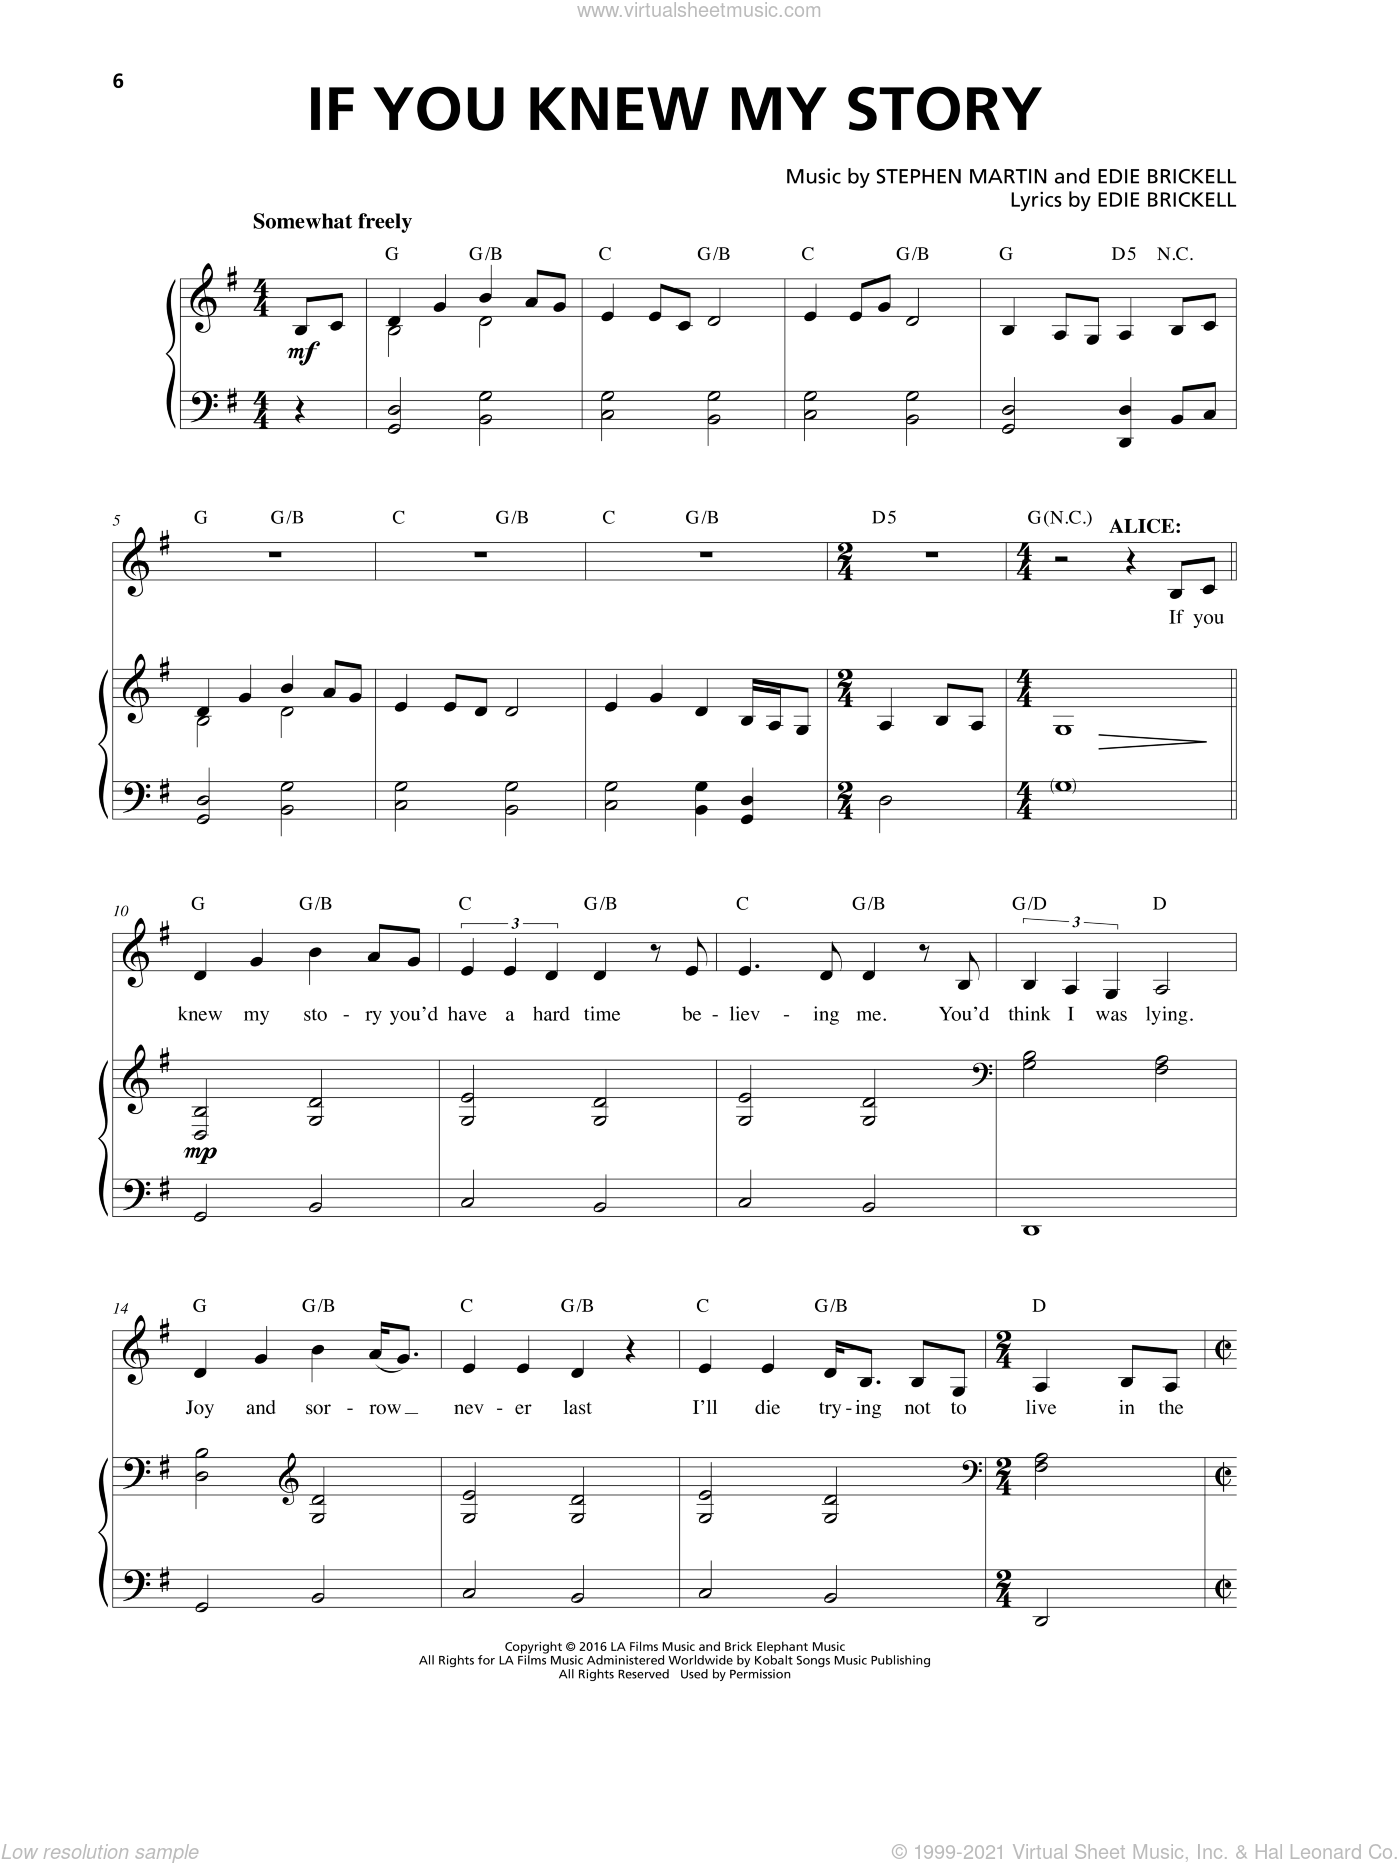 If You Knew My Story sheet music for voice and piano by Stephen Martin